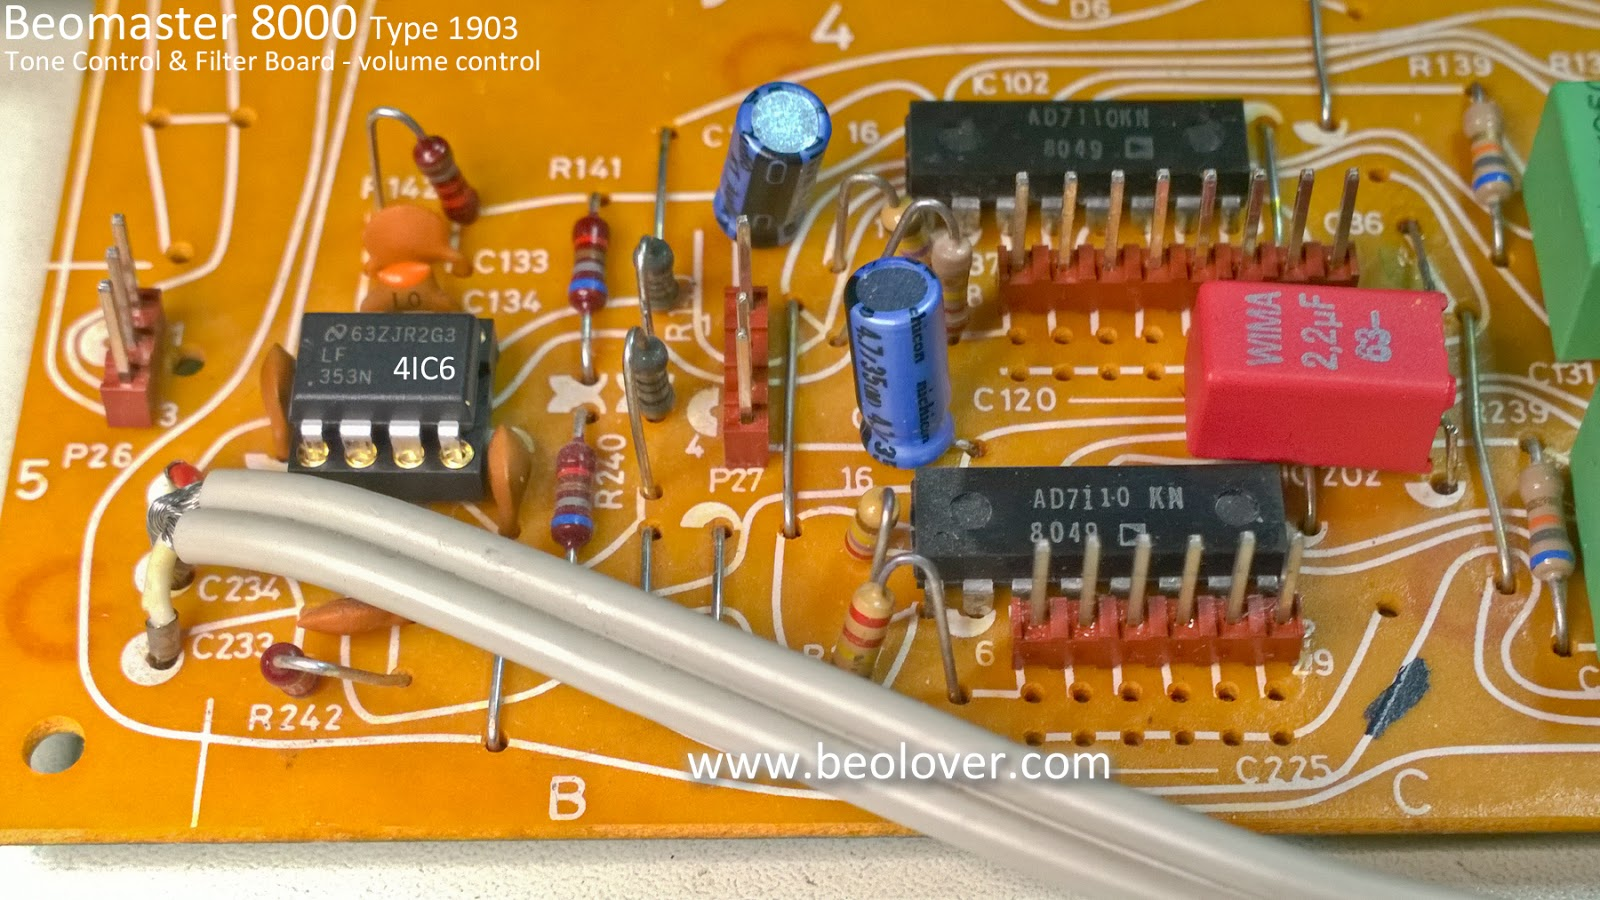 Beolover Beomaster 8000 Evaluating The Audio Performance Volume Control Circuit Opamp Identified As 4ic6 Is For Whenever That Changed It Very Likely